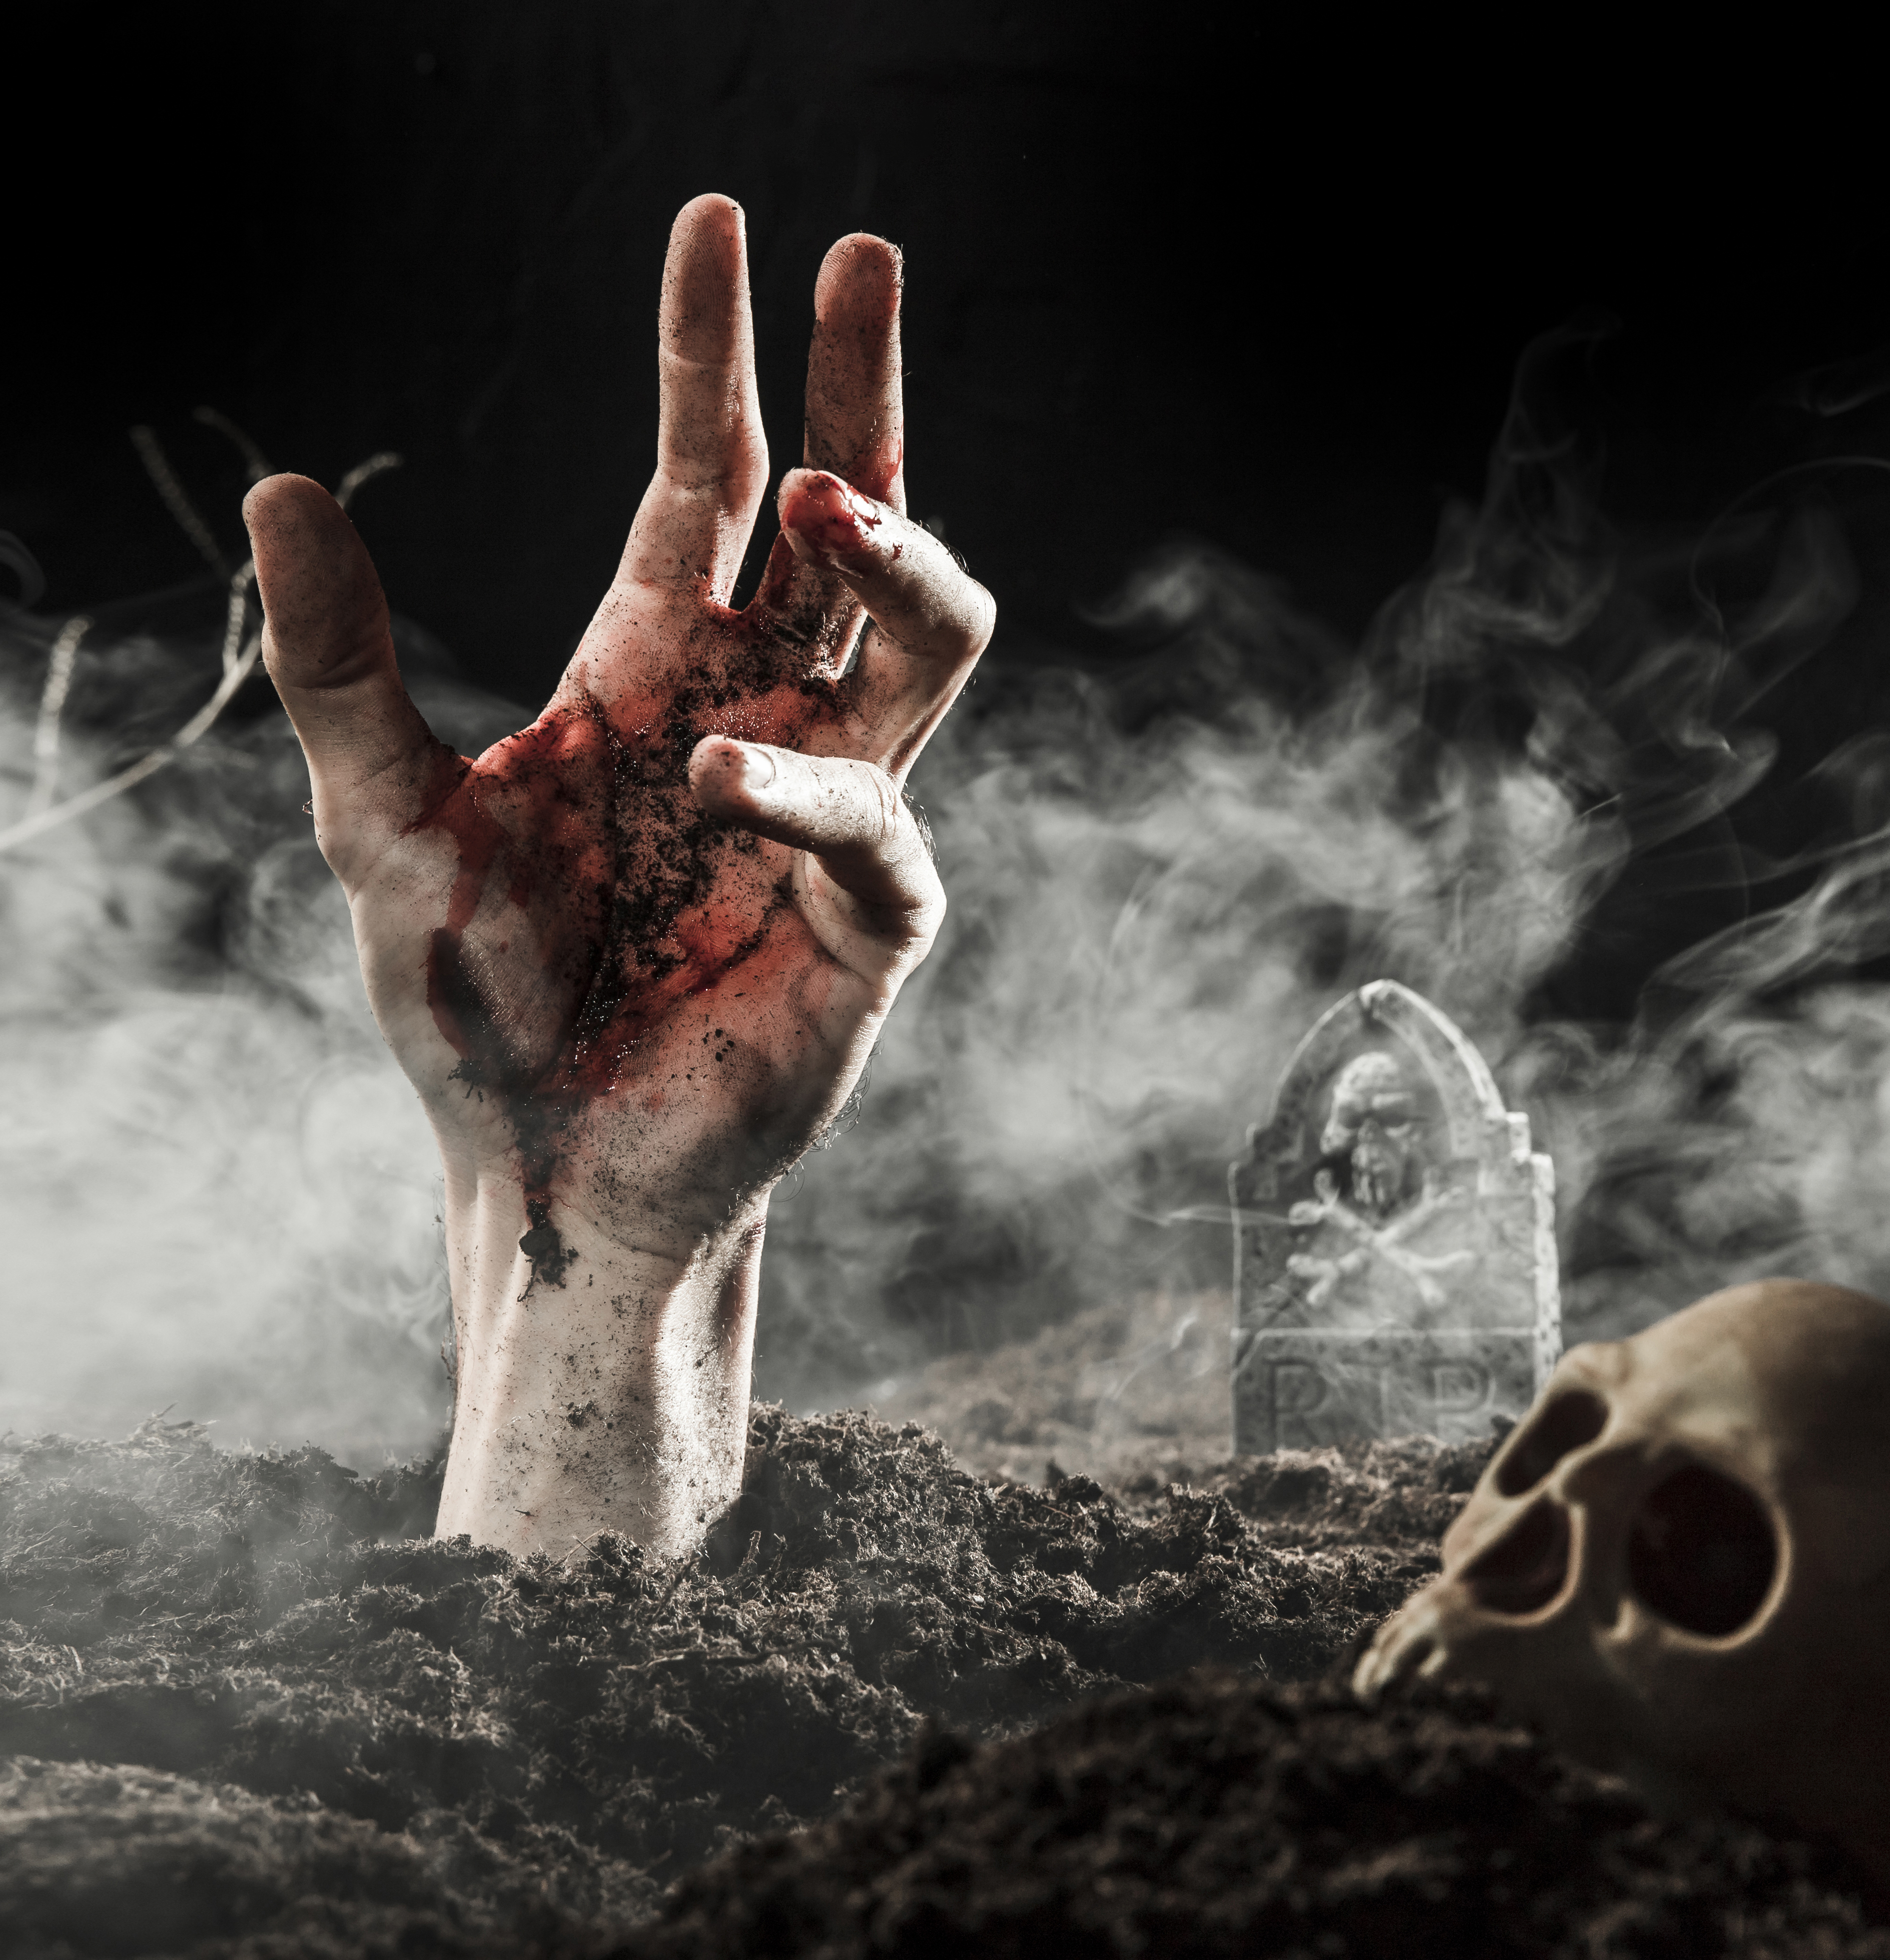 zombie hand reaching out of ground